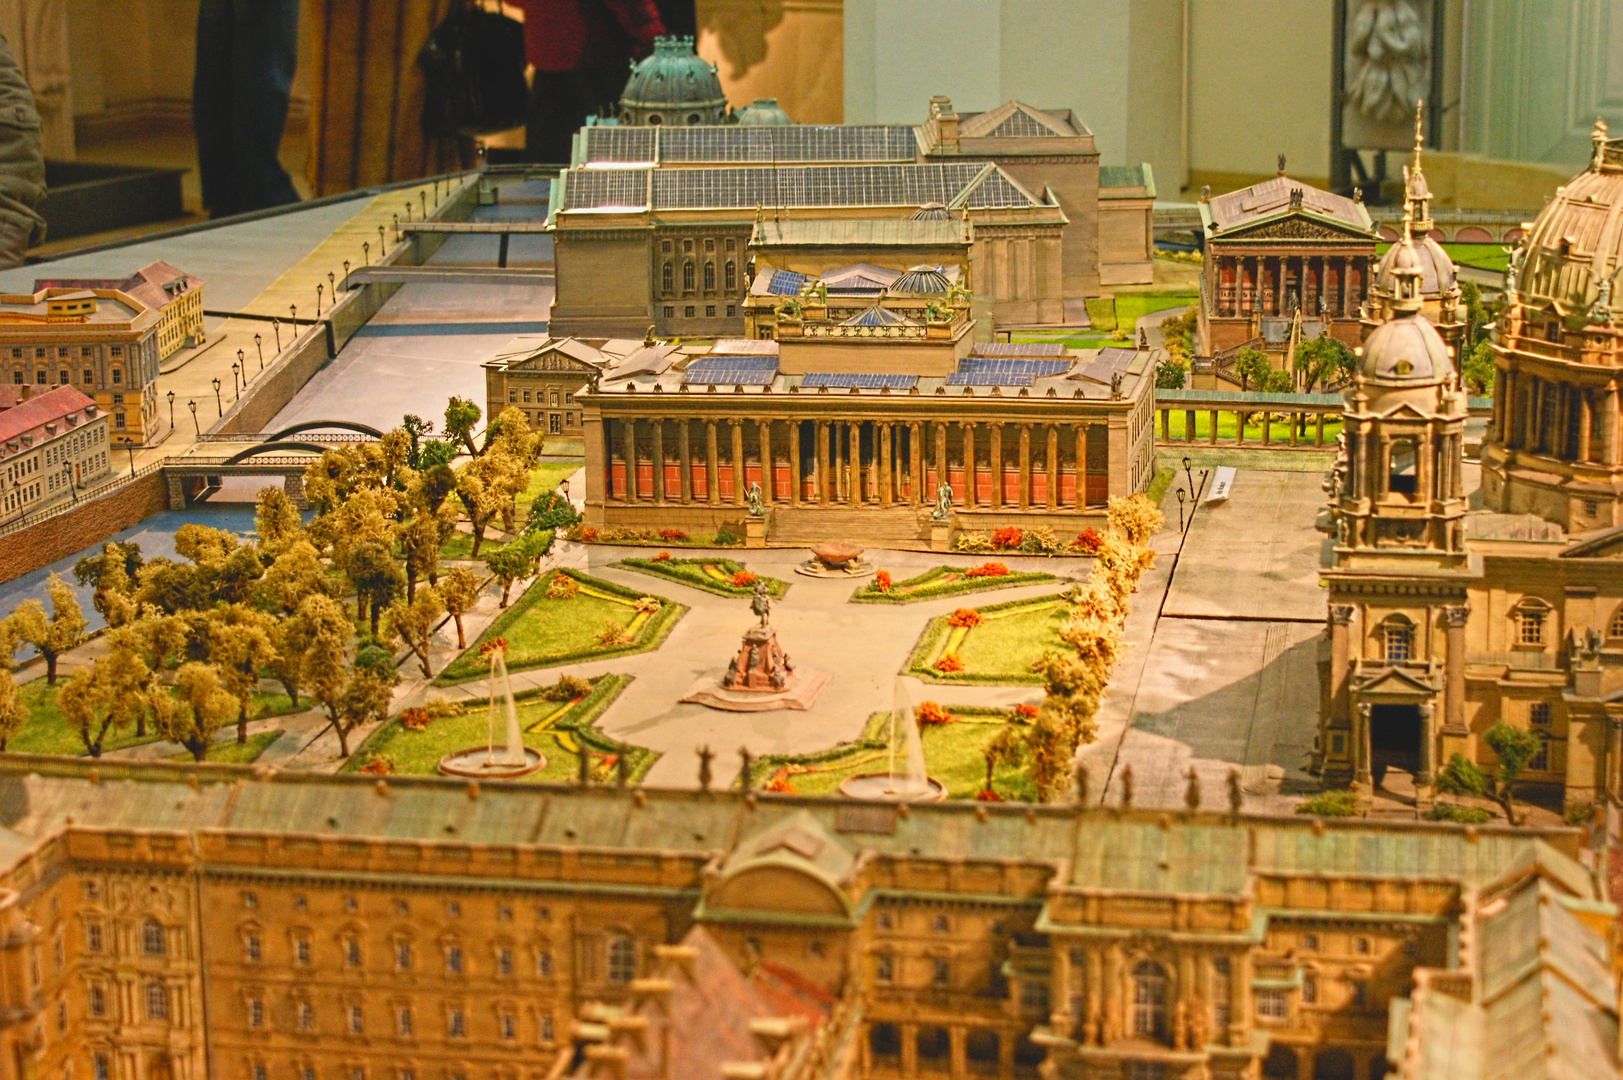 Model for Reconstruction of the Historic Centre of Berlin